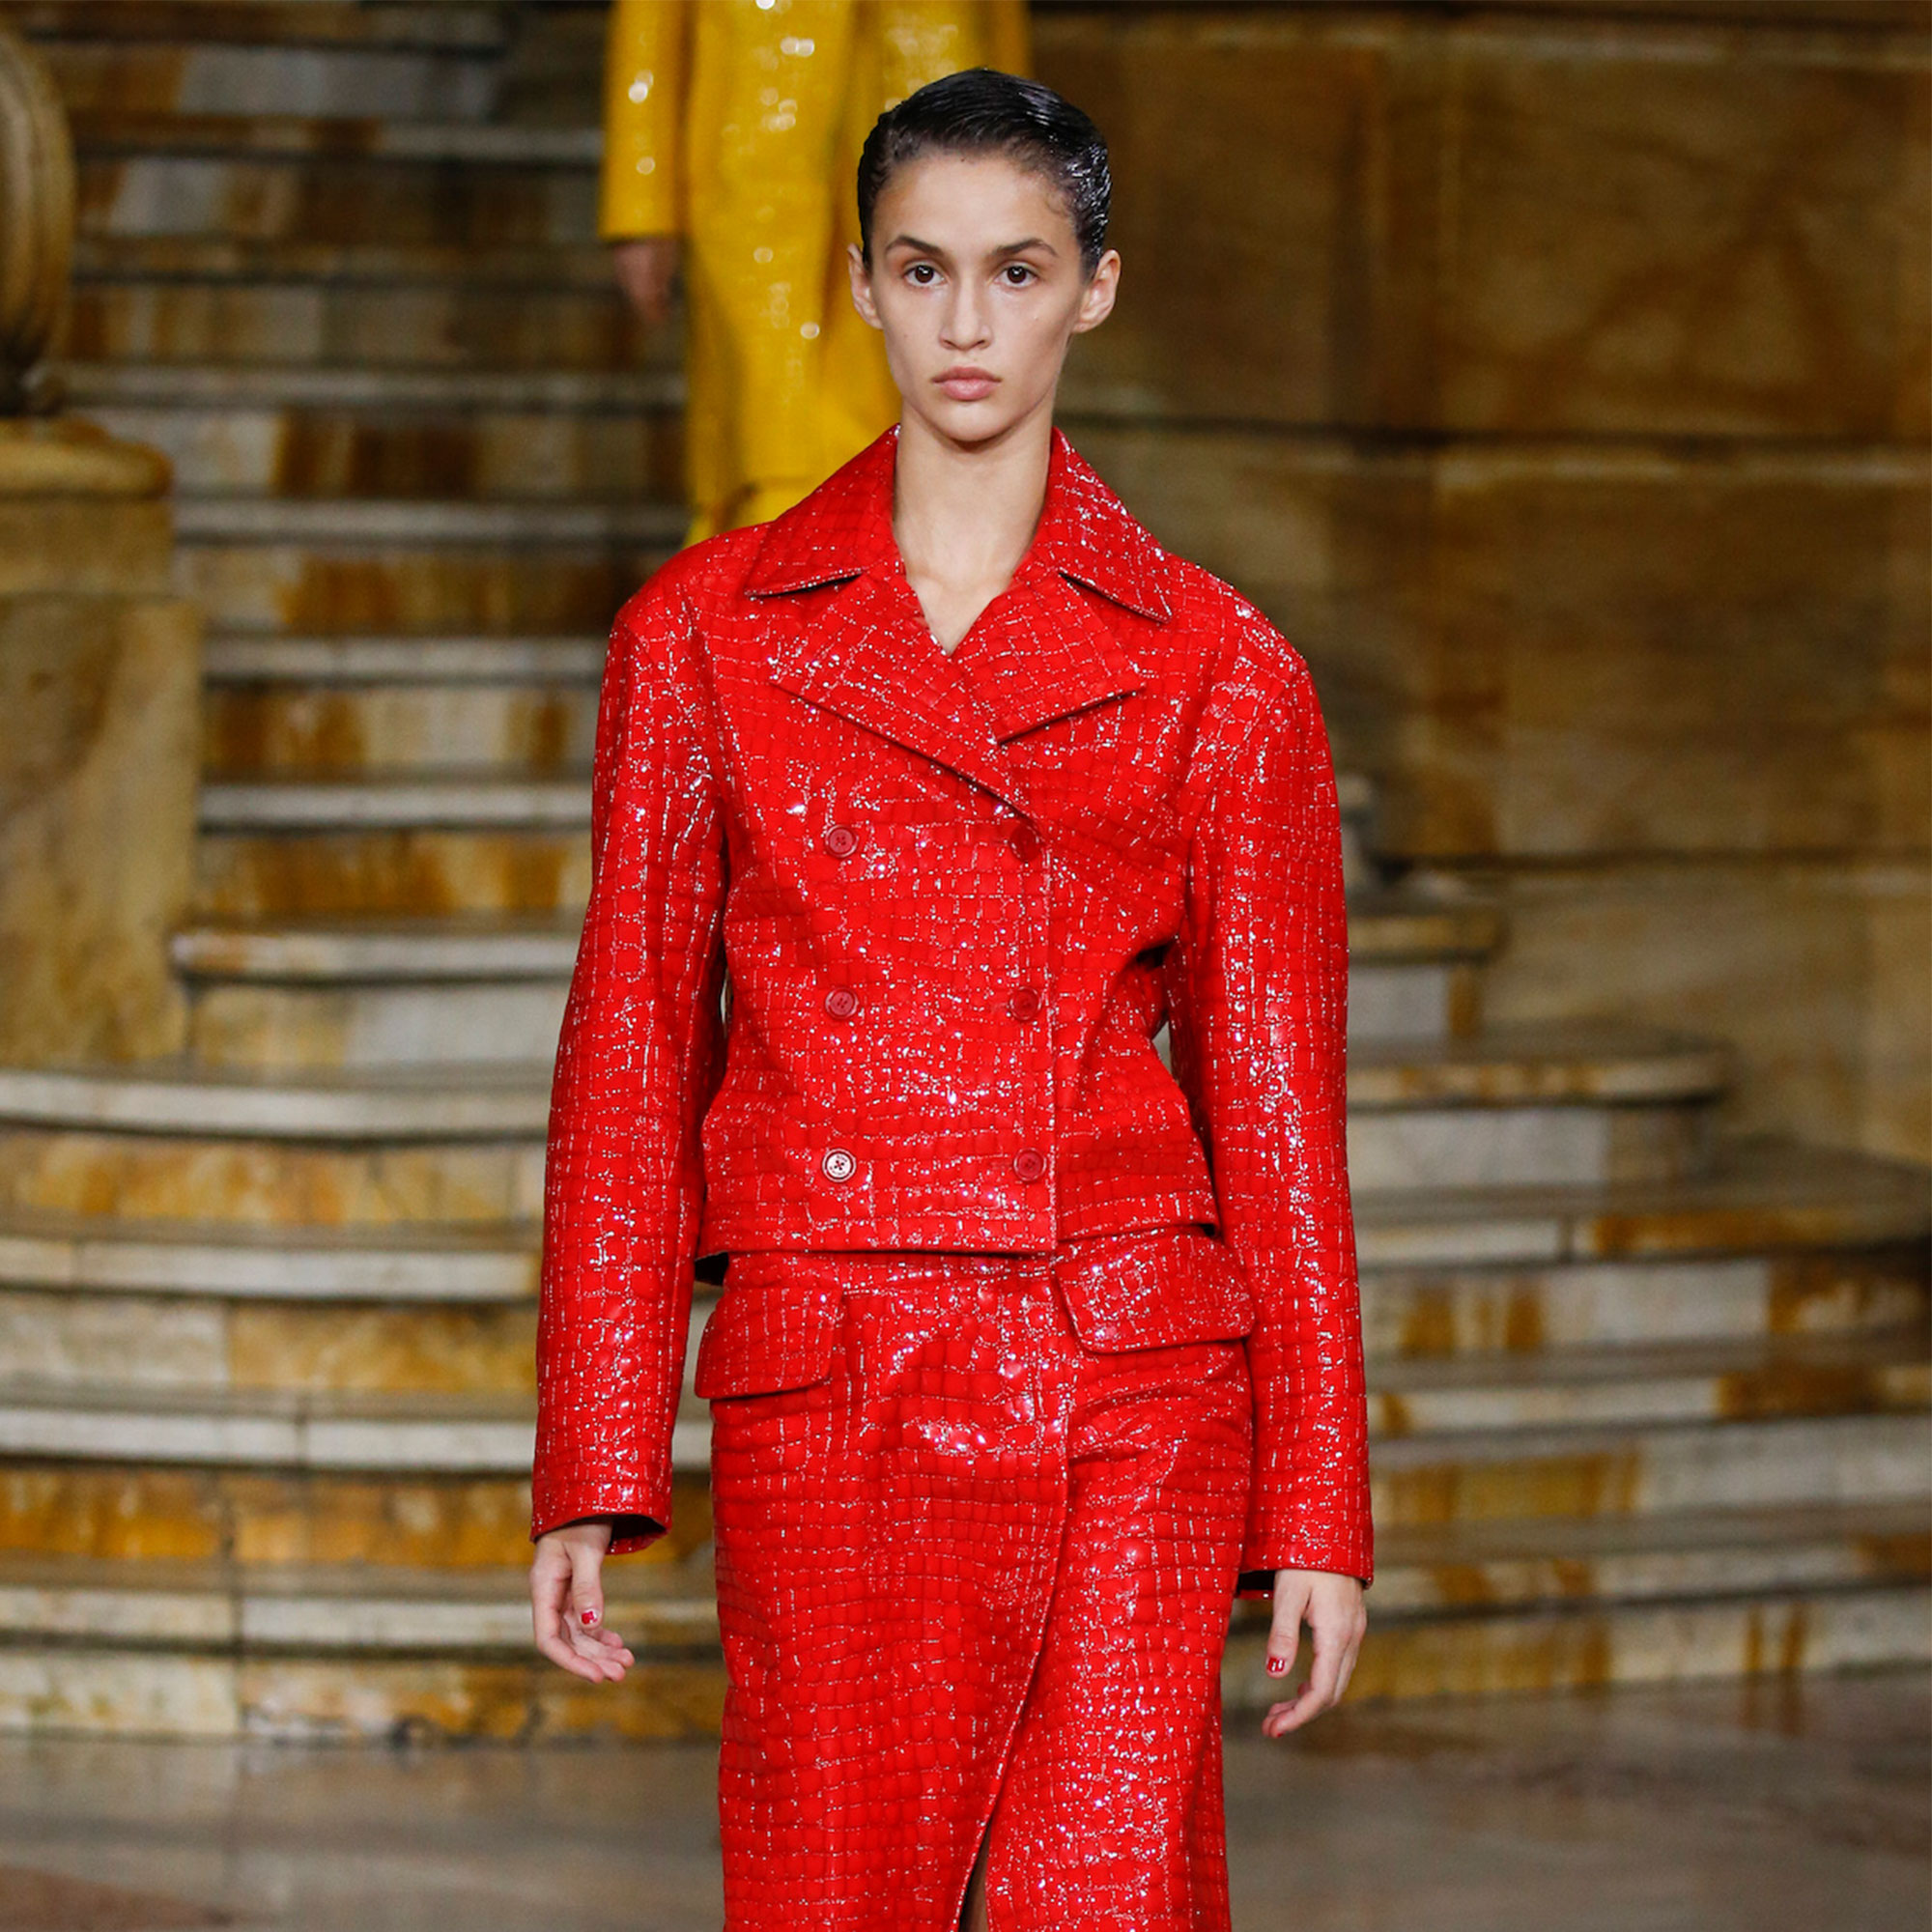 Sies Marjan Releases a 'Croc' of Vibrant Colors at NYFW – SURFACE